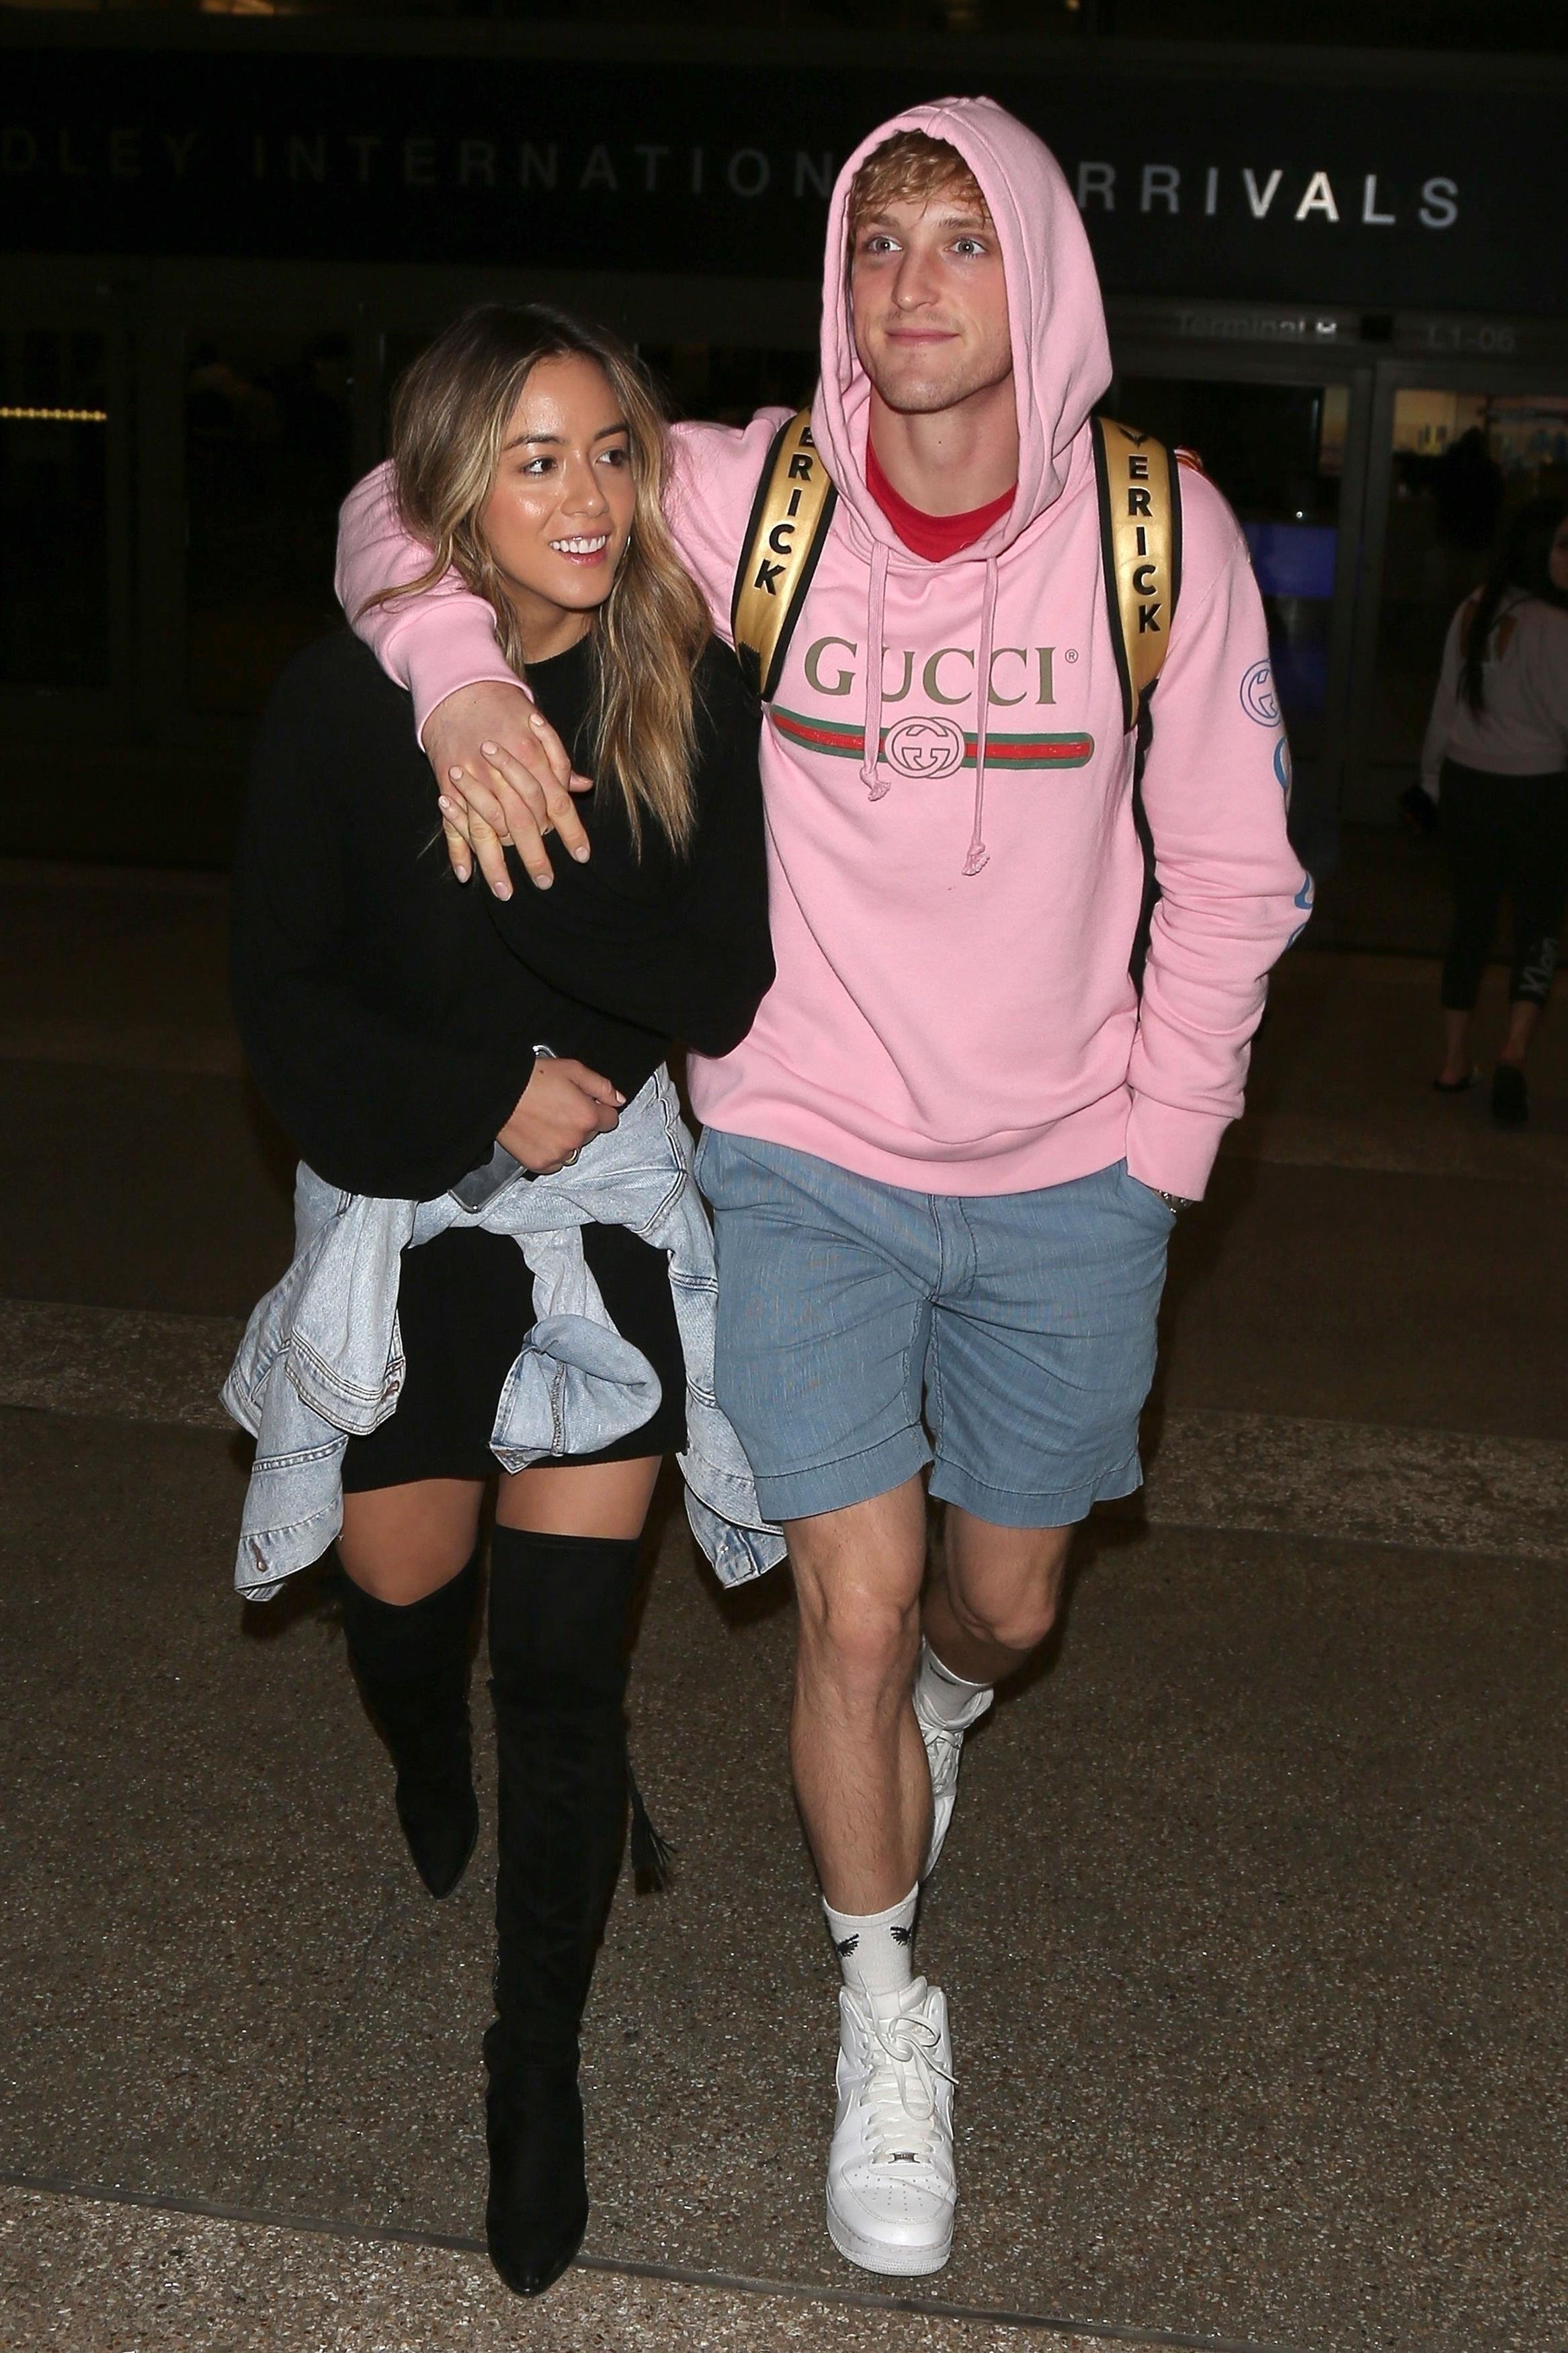 Logan Paul and actress girlfriend Chloe Bennet strolled out of LAX after the £150m bout at Manchester Arena